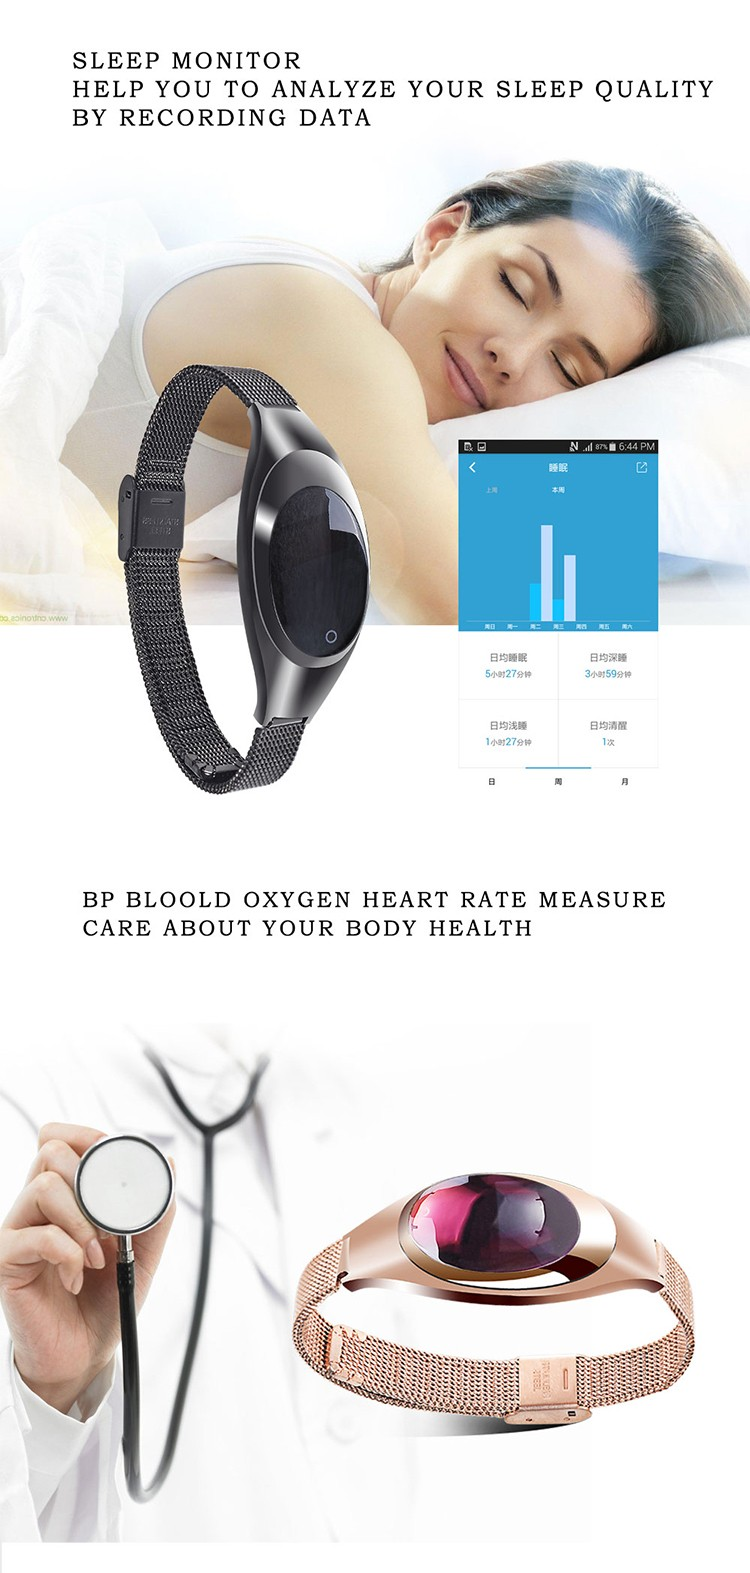 Z18 Blood oxygen testing MPU6500 6-axis G-sensor heart rate sensor CH-NRF21822 bt wrist band